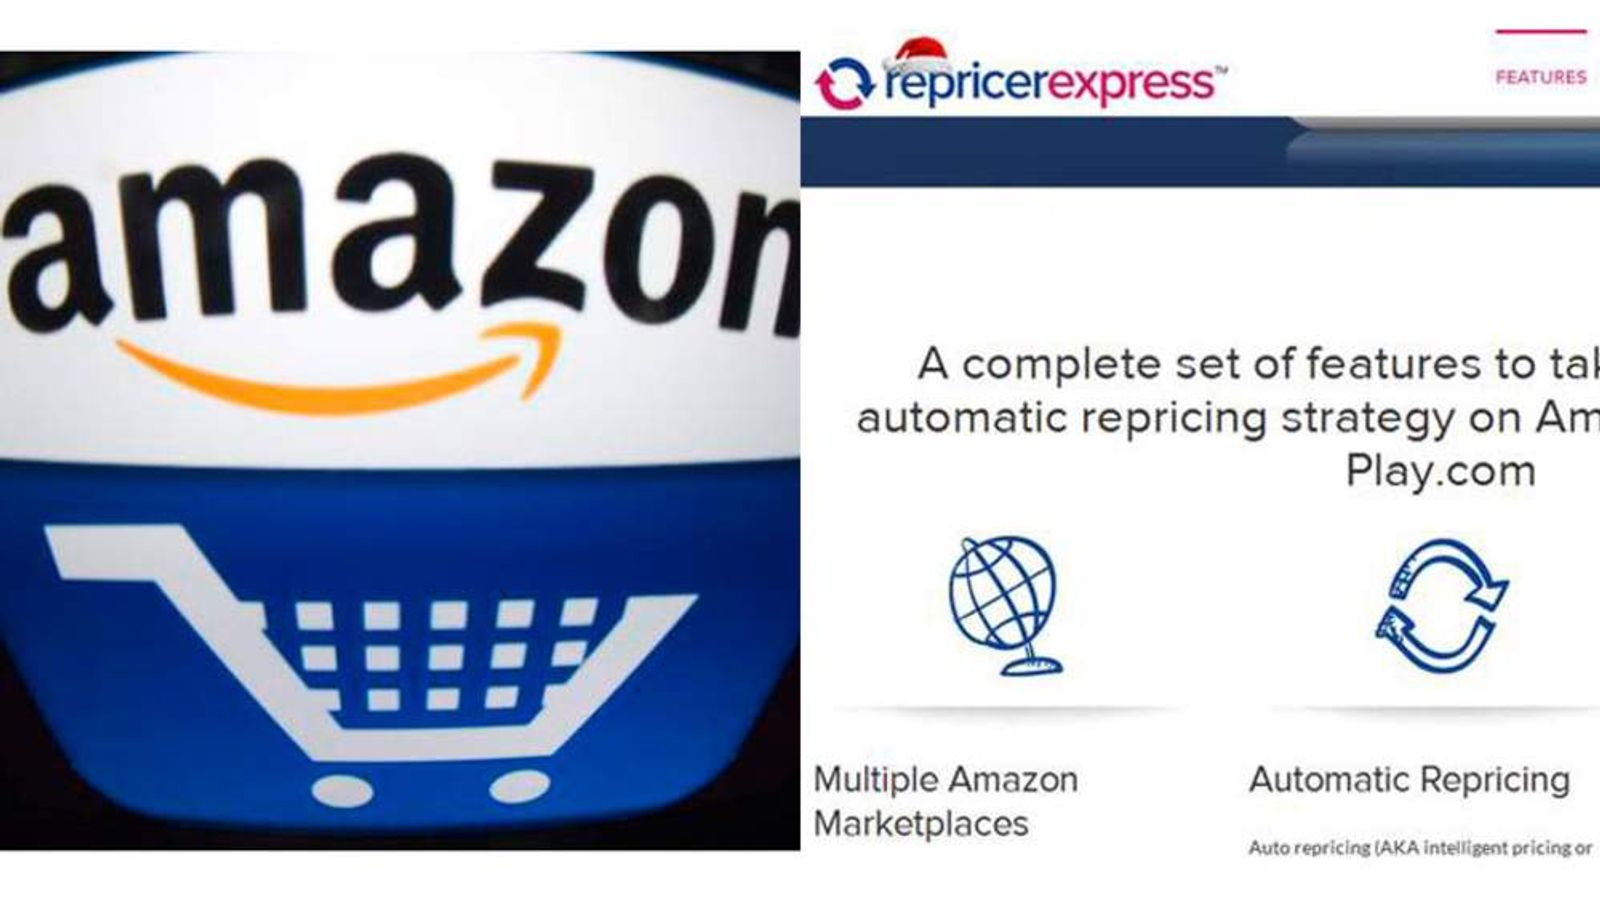 Amazon and RepricerExpress